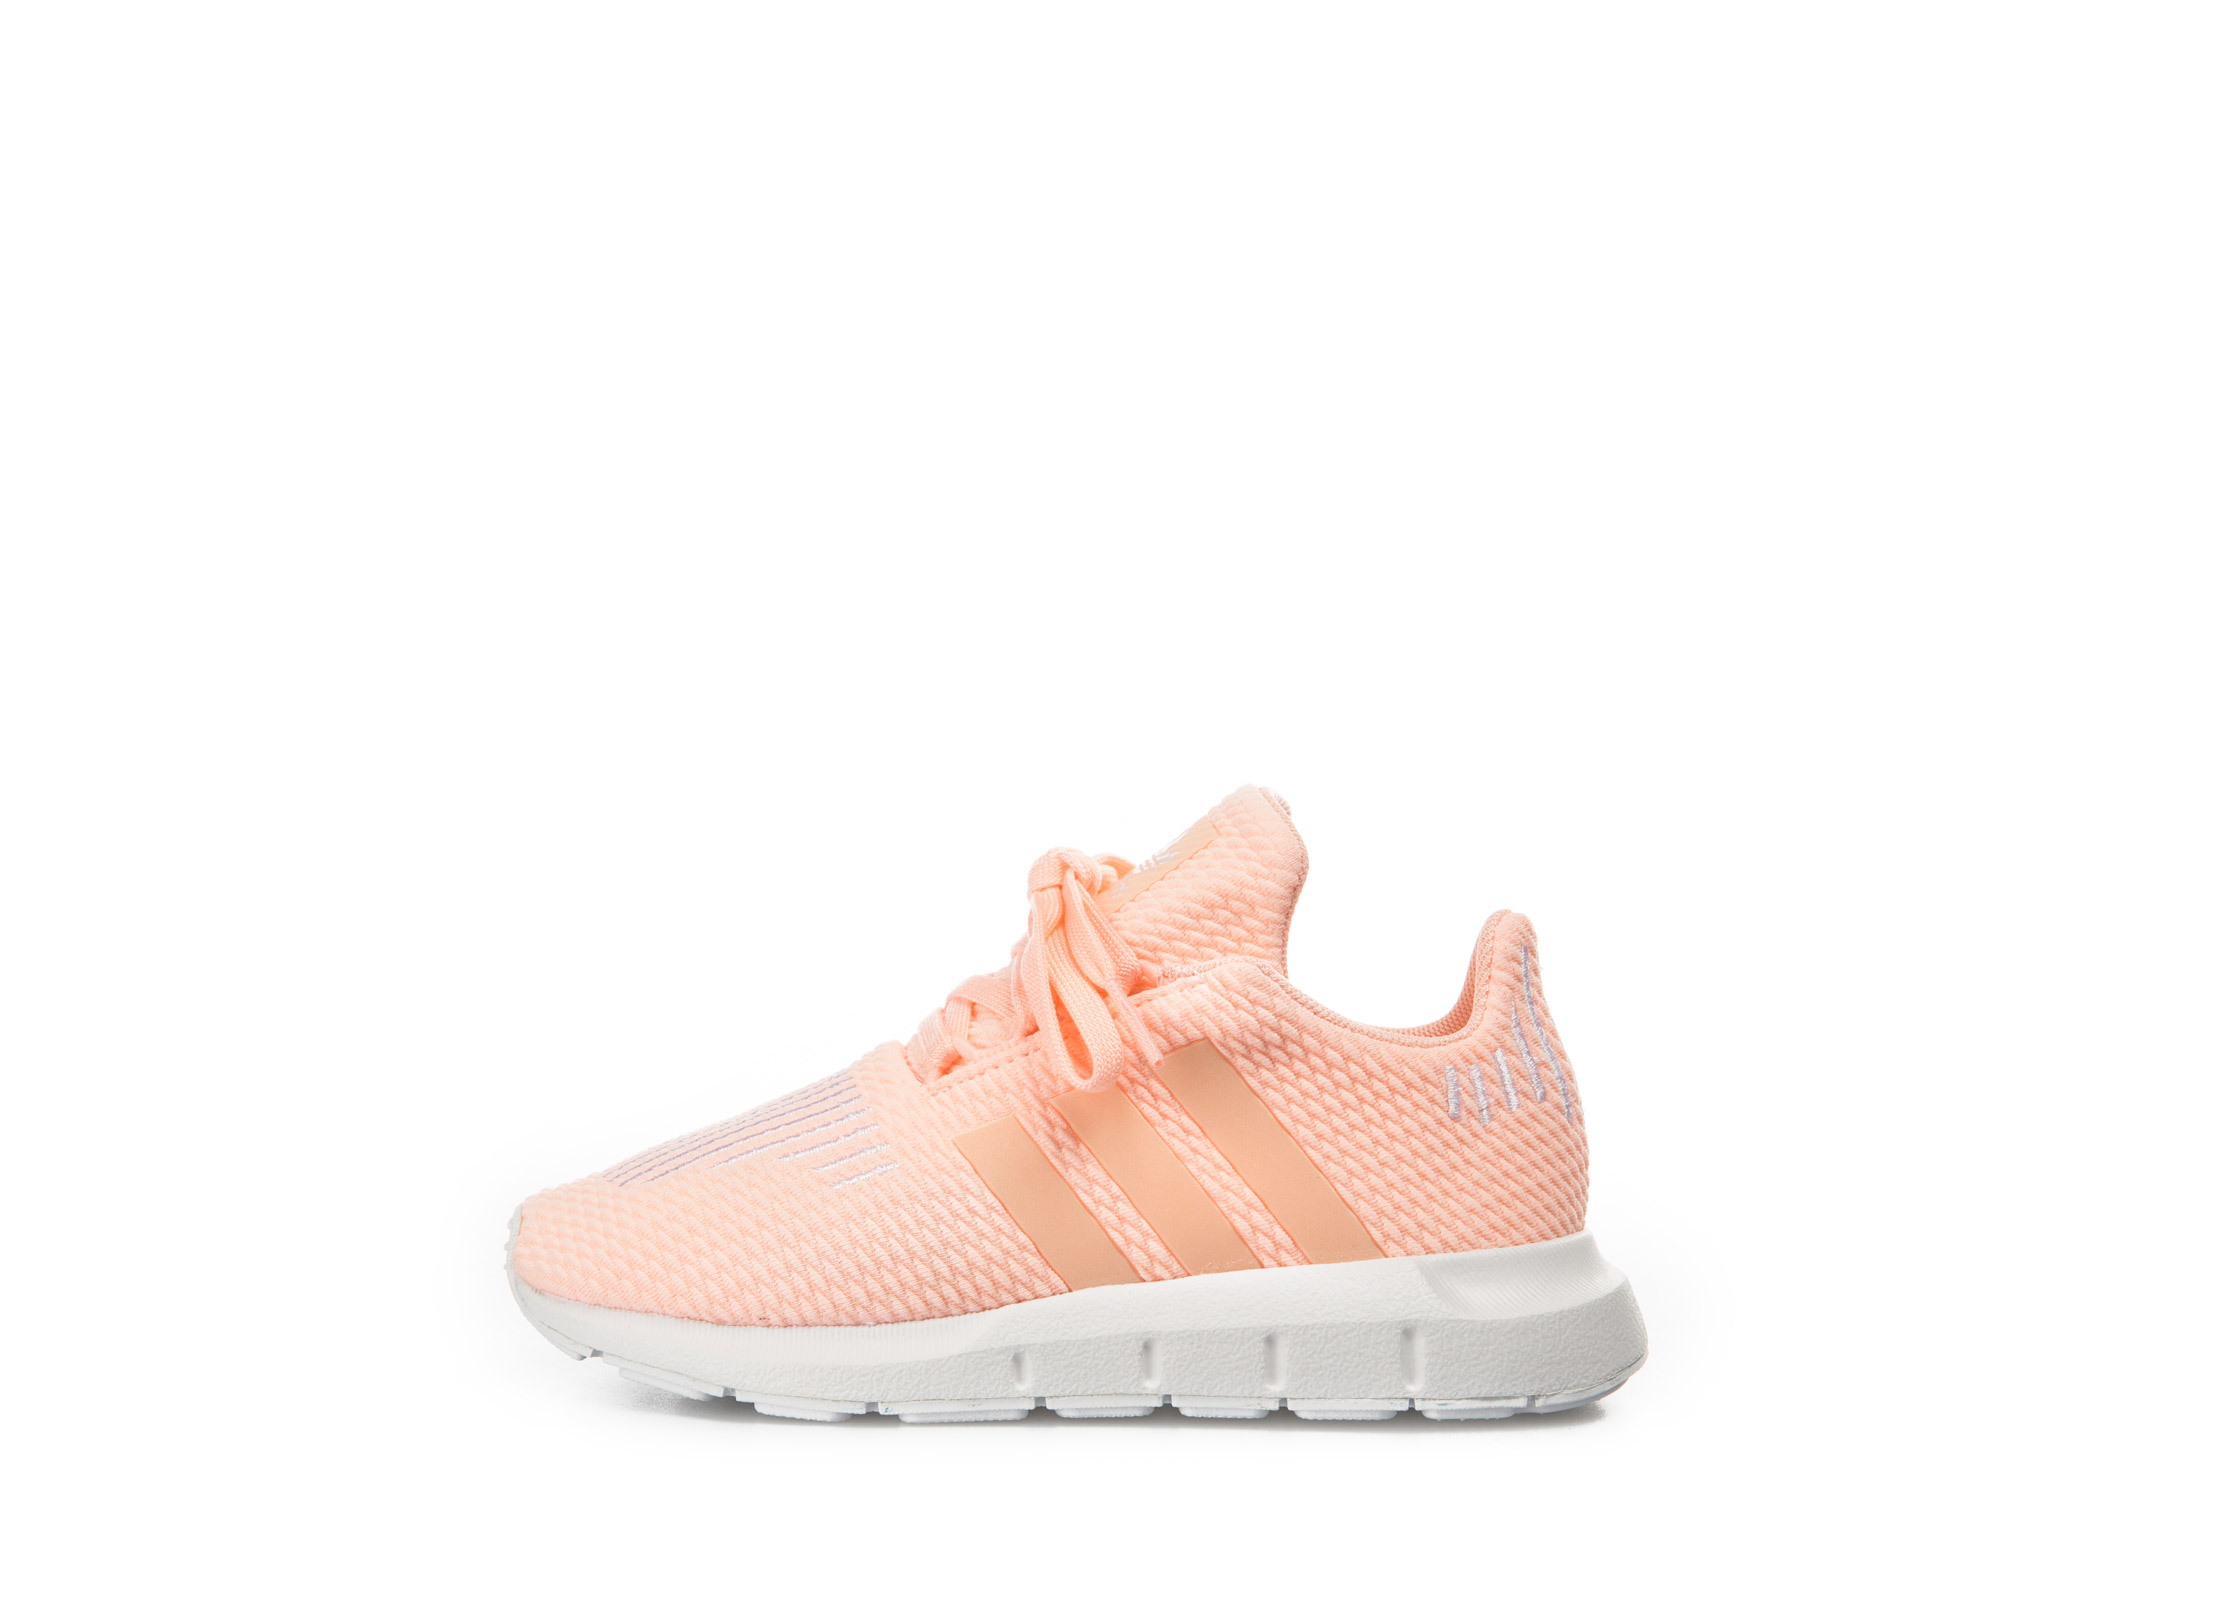 adidas Originals SWIFT RUN C CG6922 Σομόν